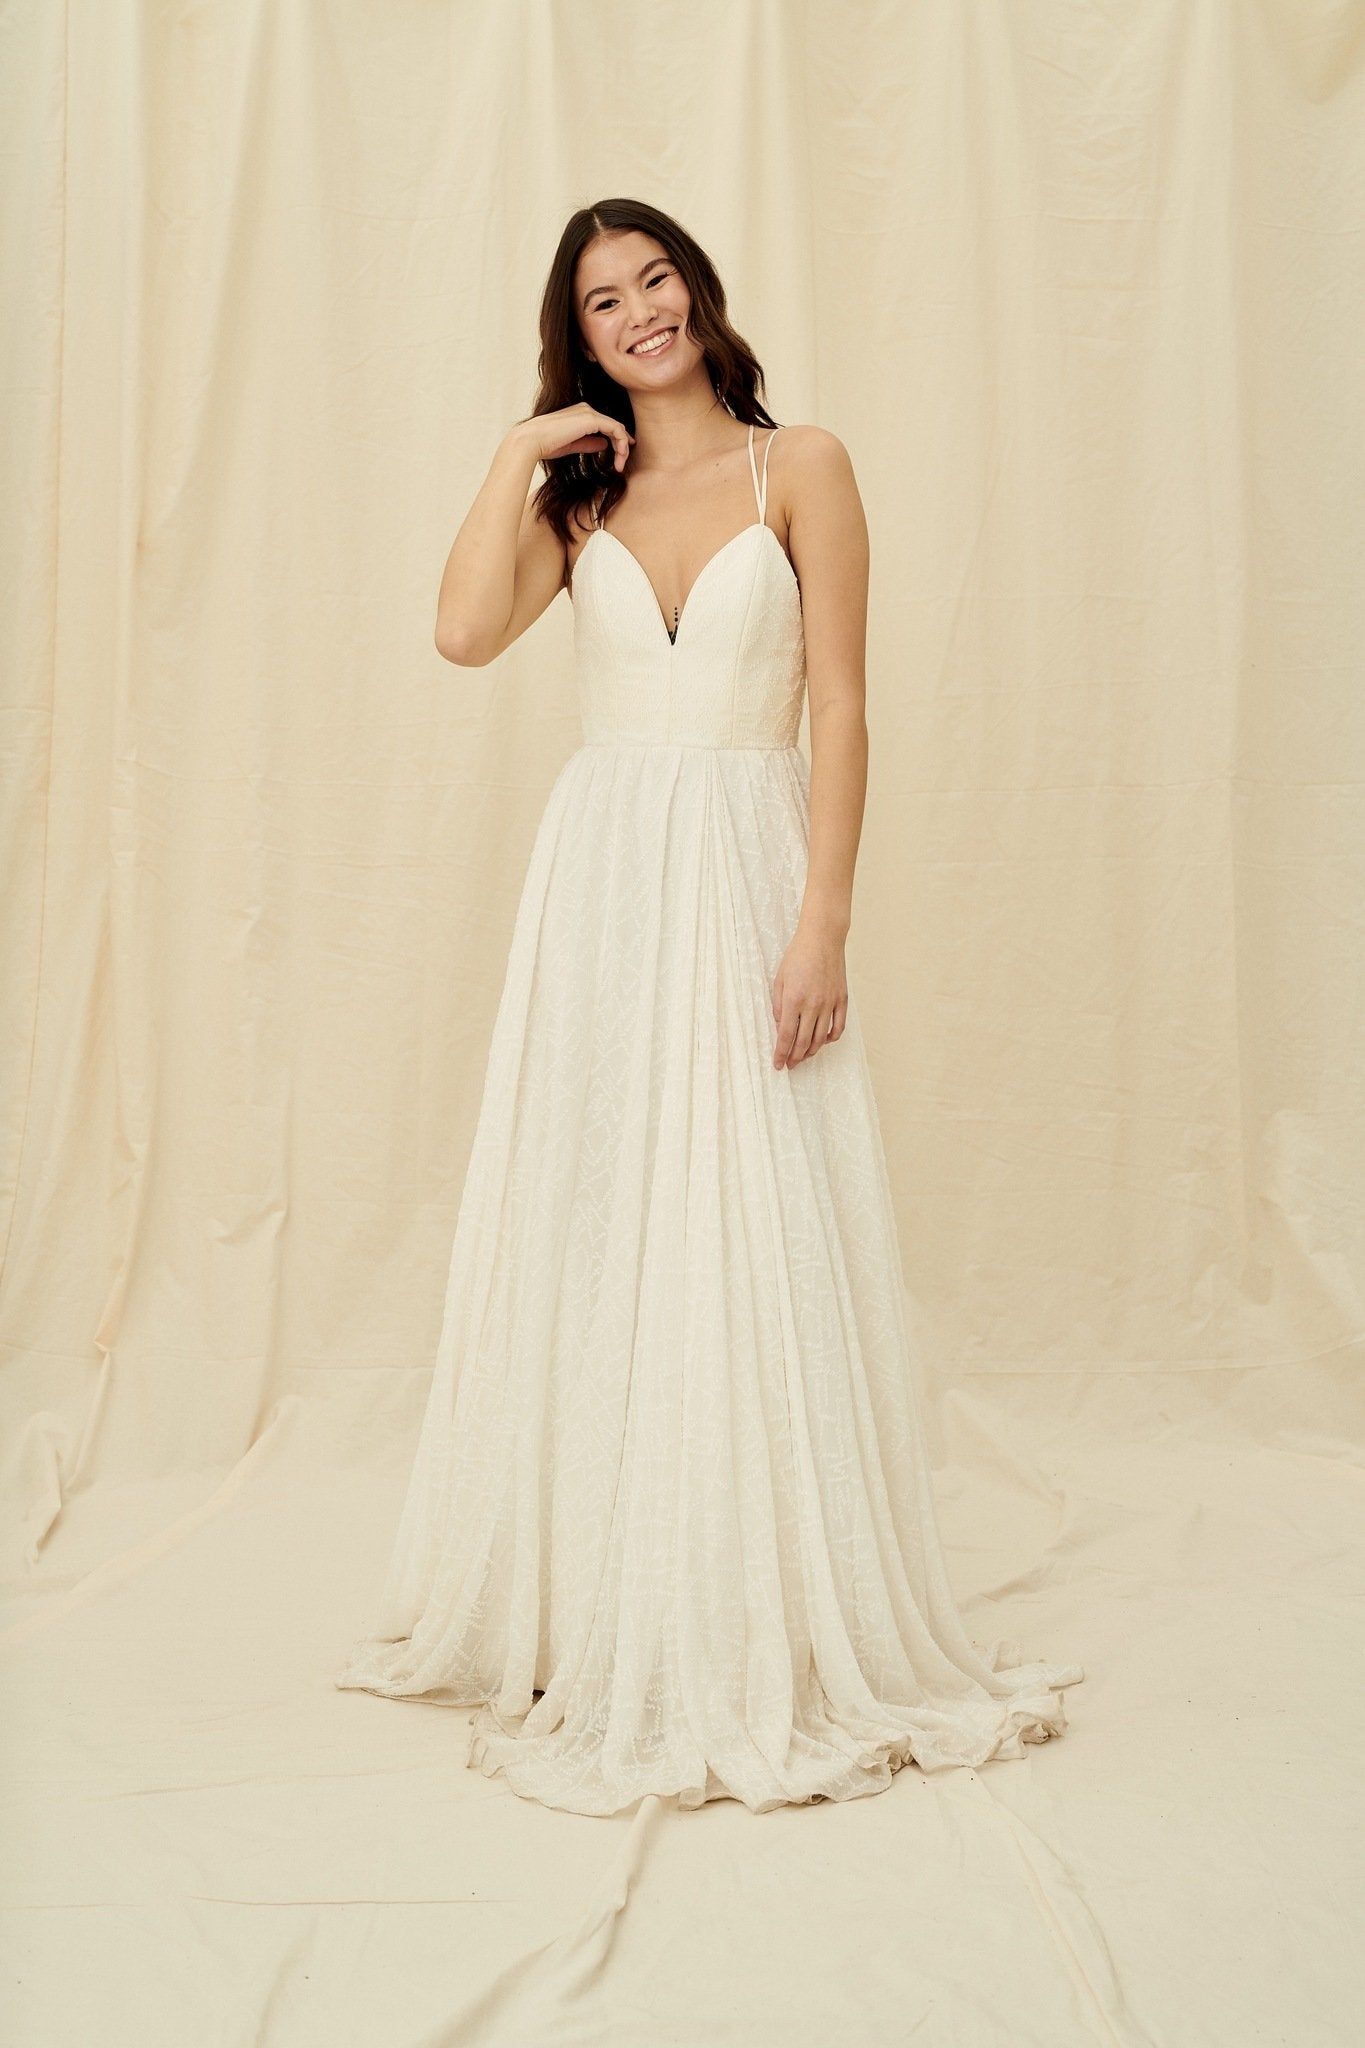 A textured chiffon gown with criss-cross back straps and a structured bodice by Truvelle